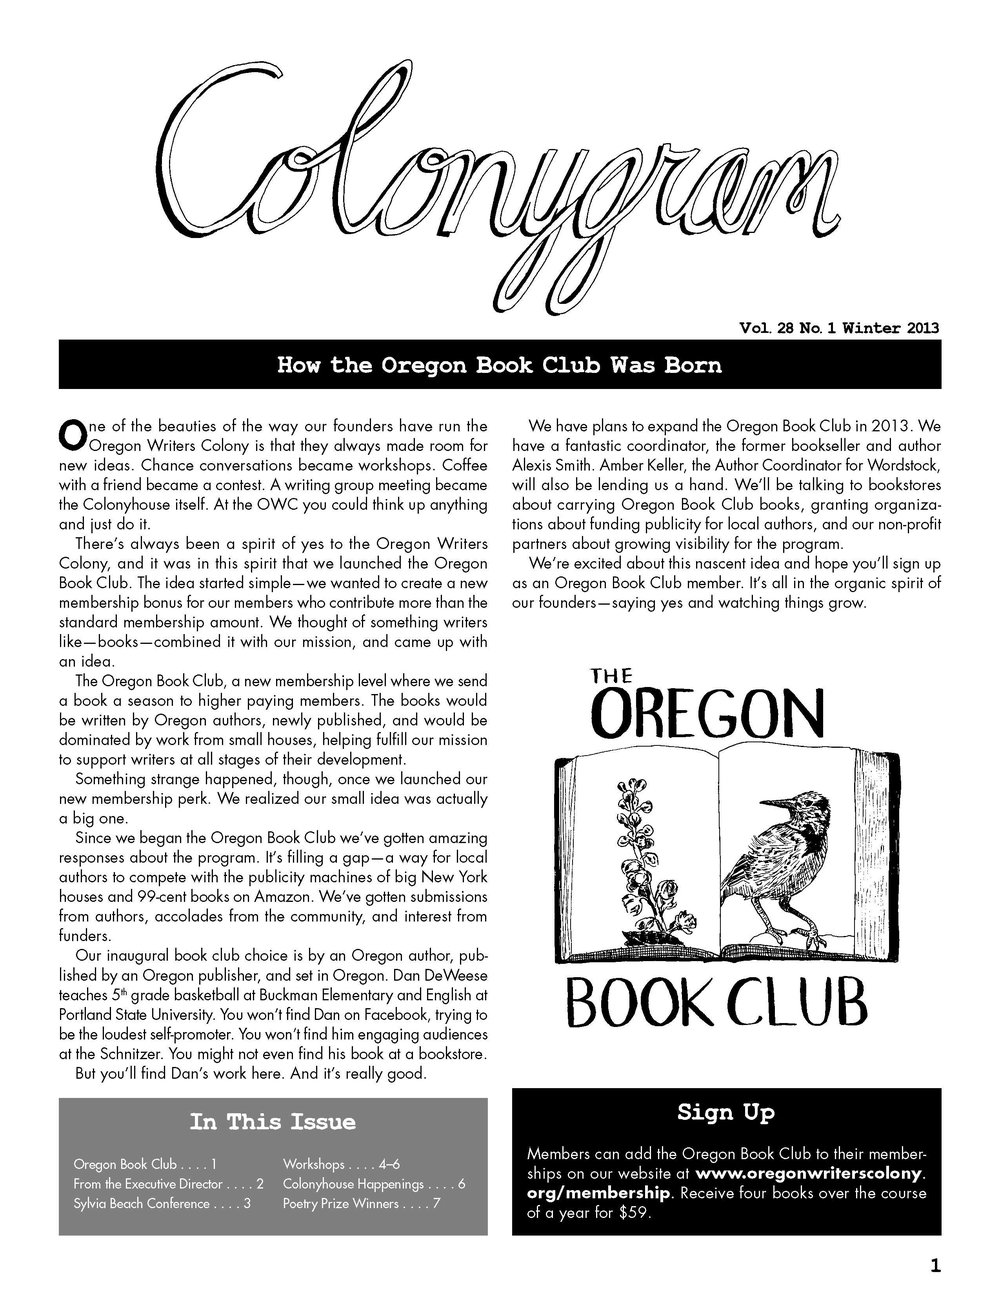 Newsletter sample for The Colonygram of the Oregon Writers' Colony